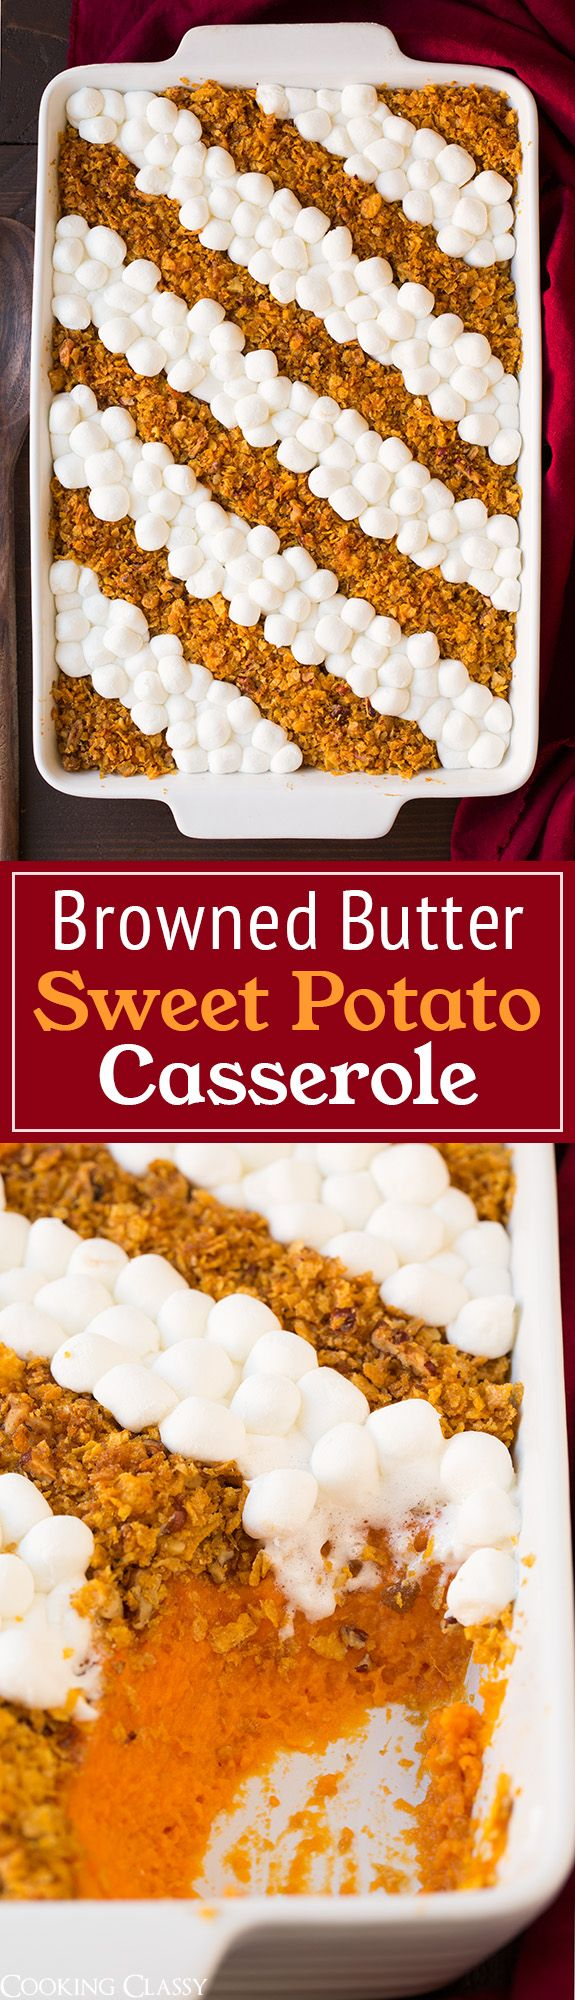 Browned Butter Sweet Potato Casserole - my go to sweet potato casserole every Thanksgiving! Always a hit!